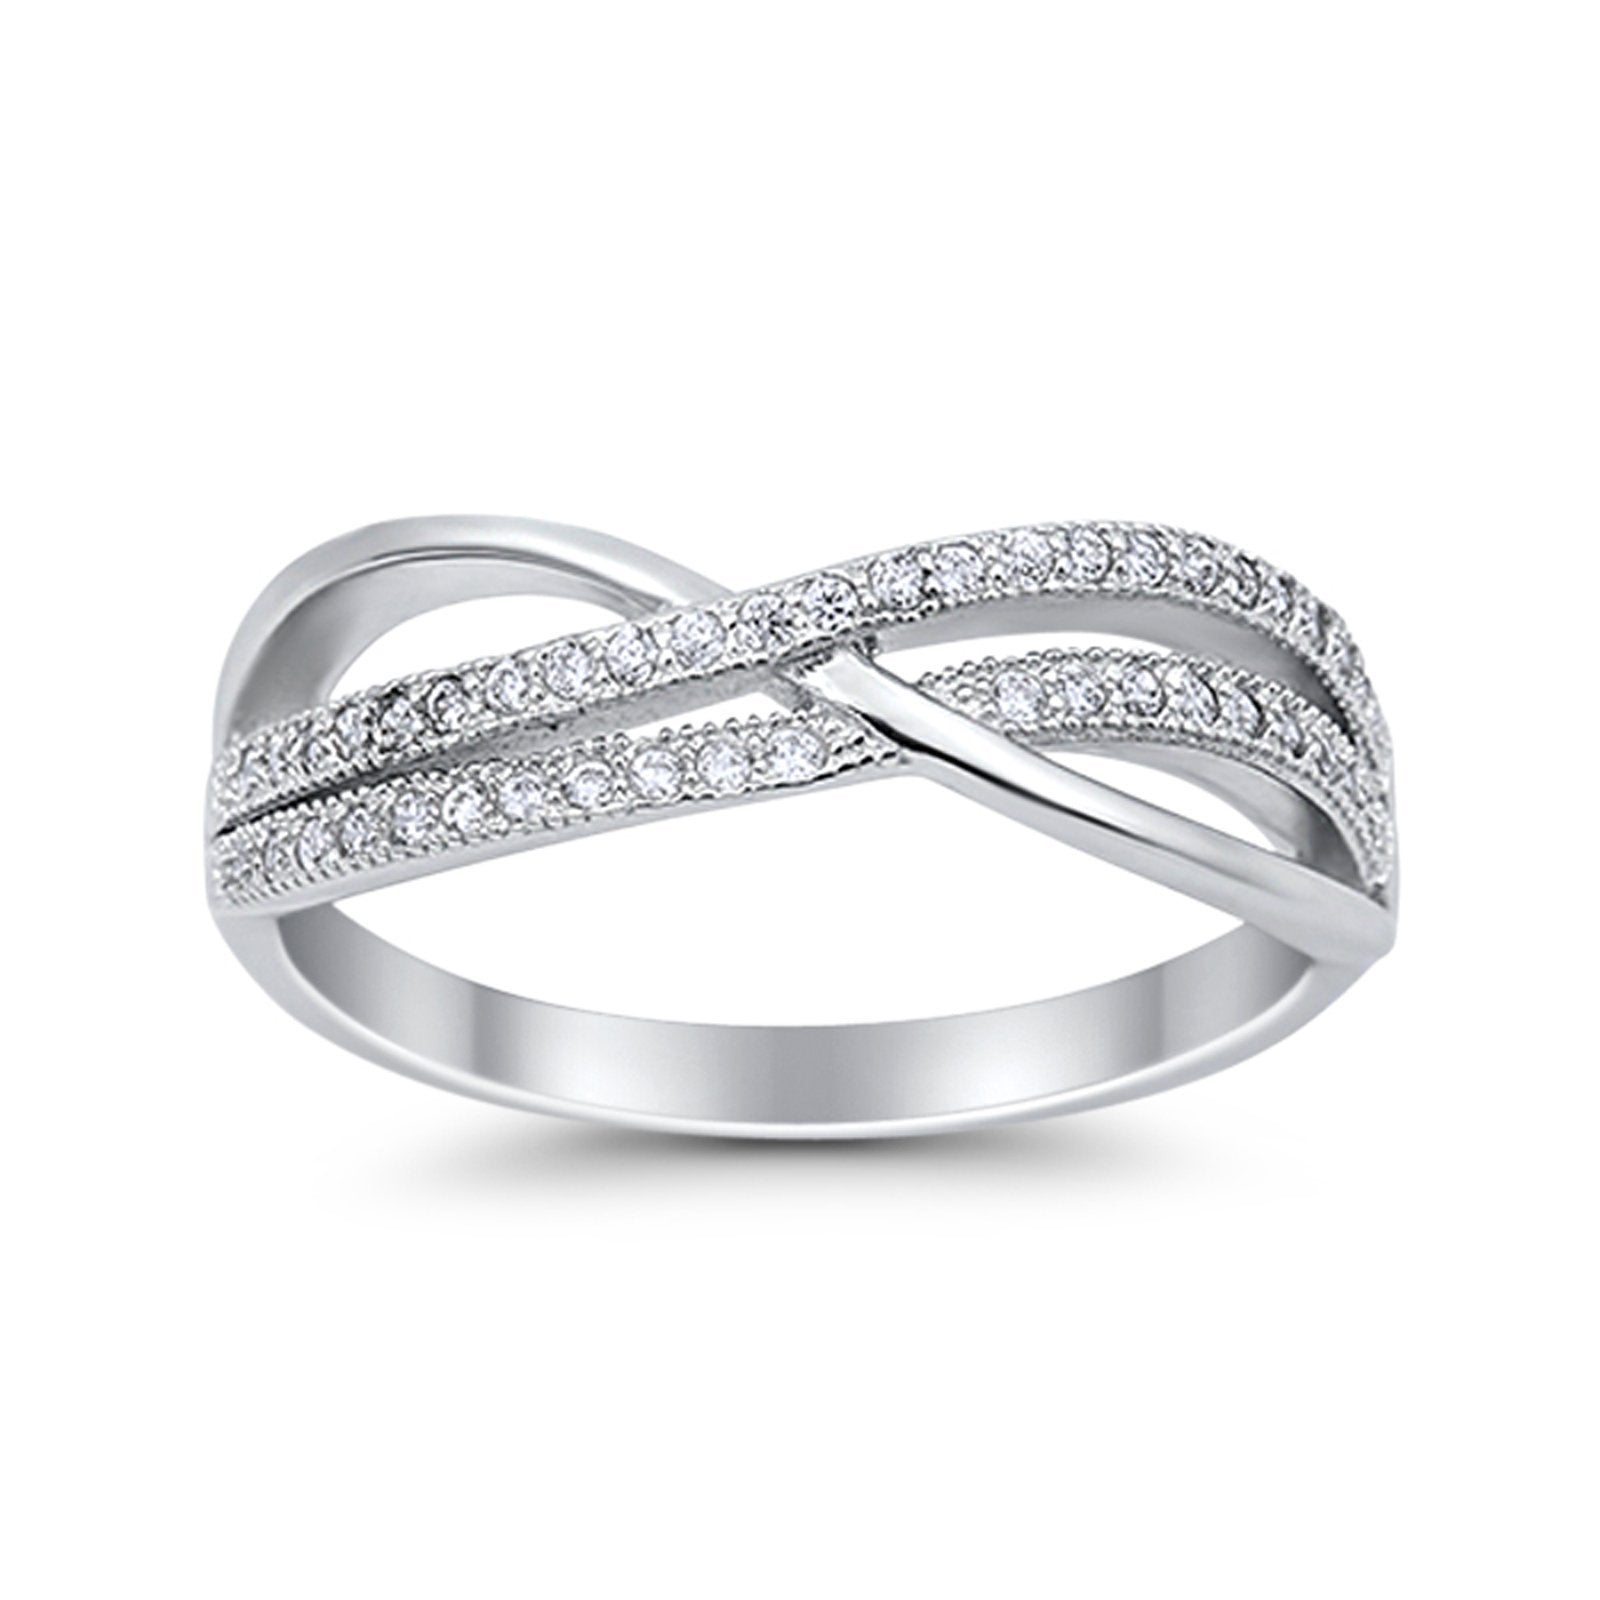 Crisscross Infinity Rings Eternity Simulated CZ 925 Sterling Silver